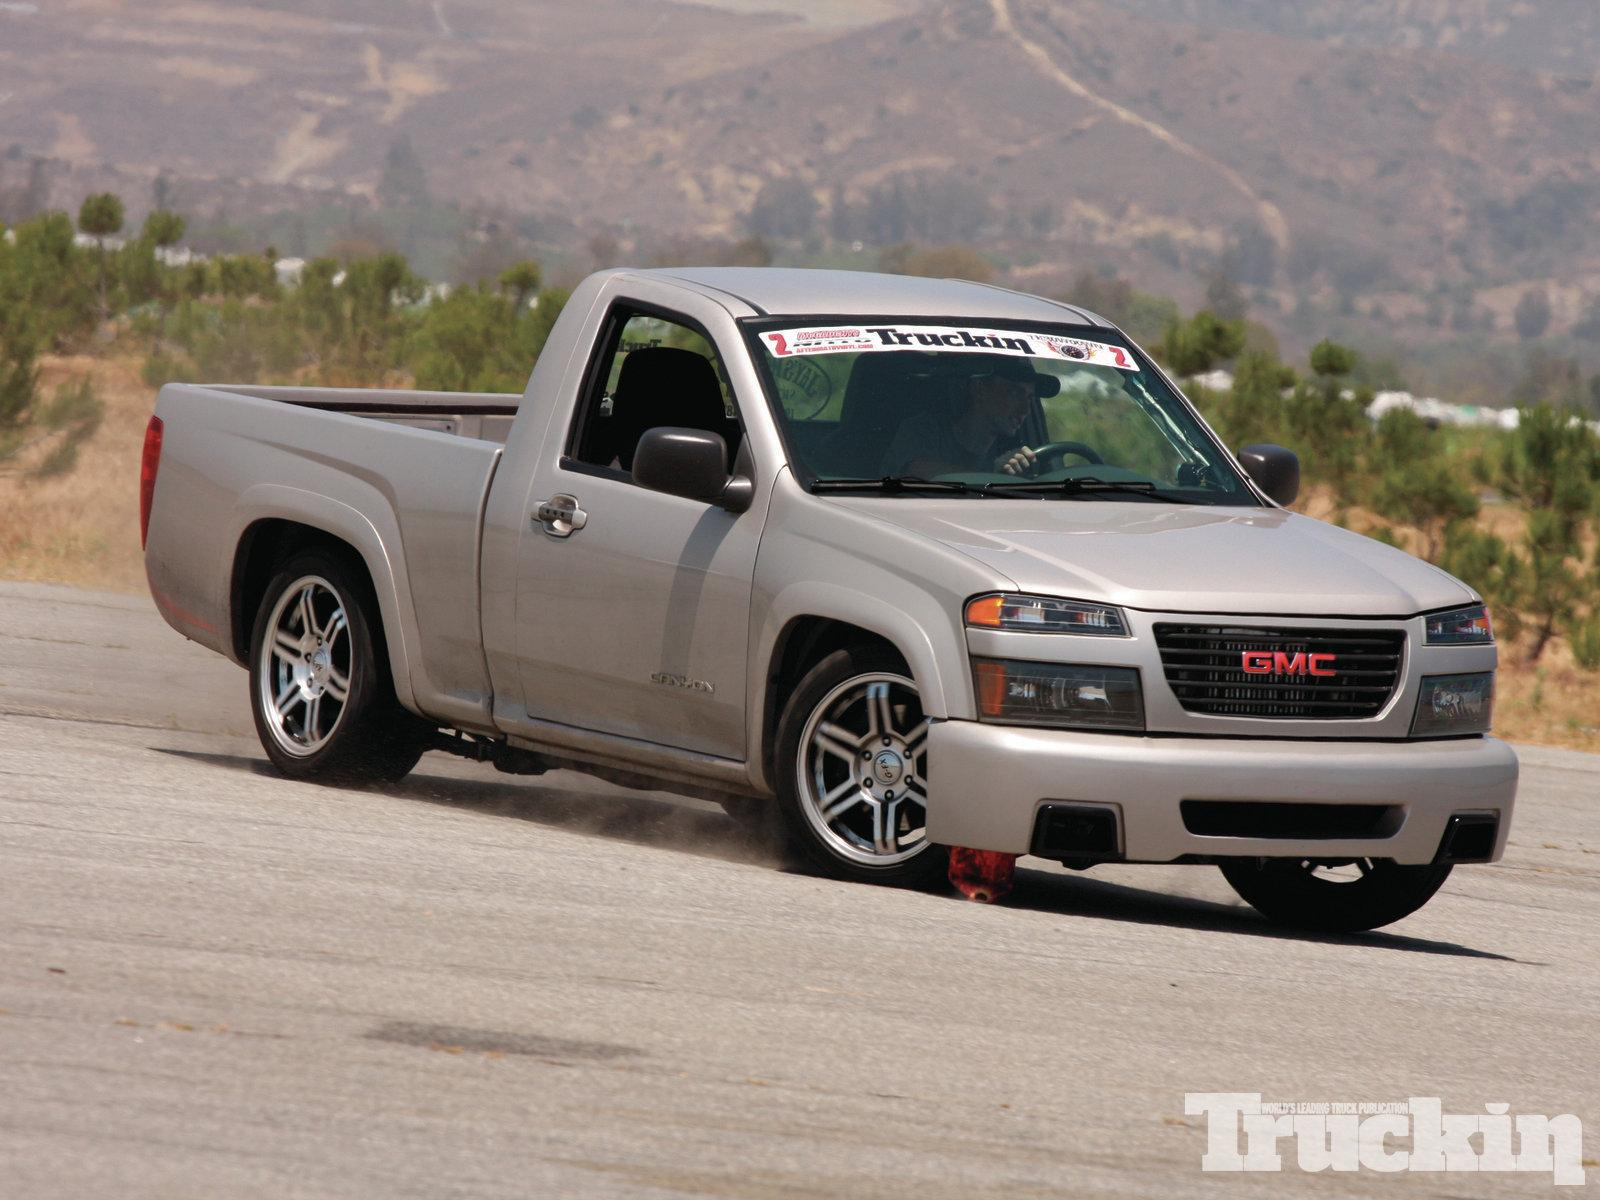 2005 GMC Canyon - Information and photos - Zomb Drive